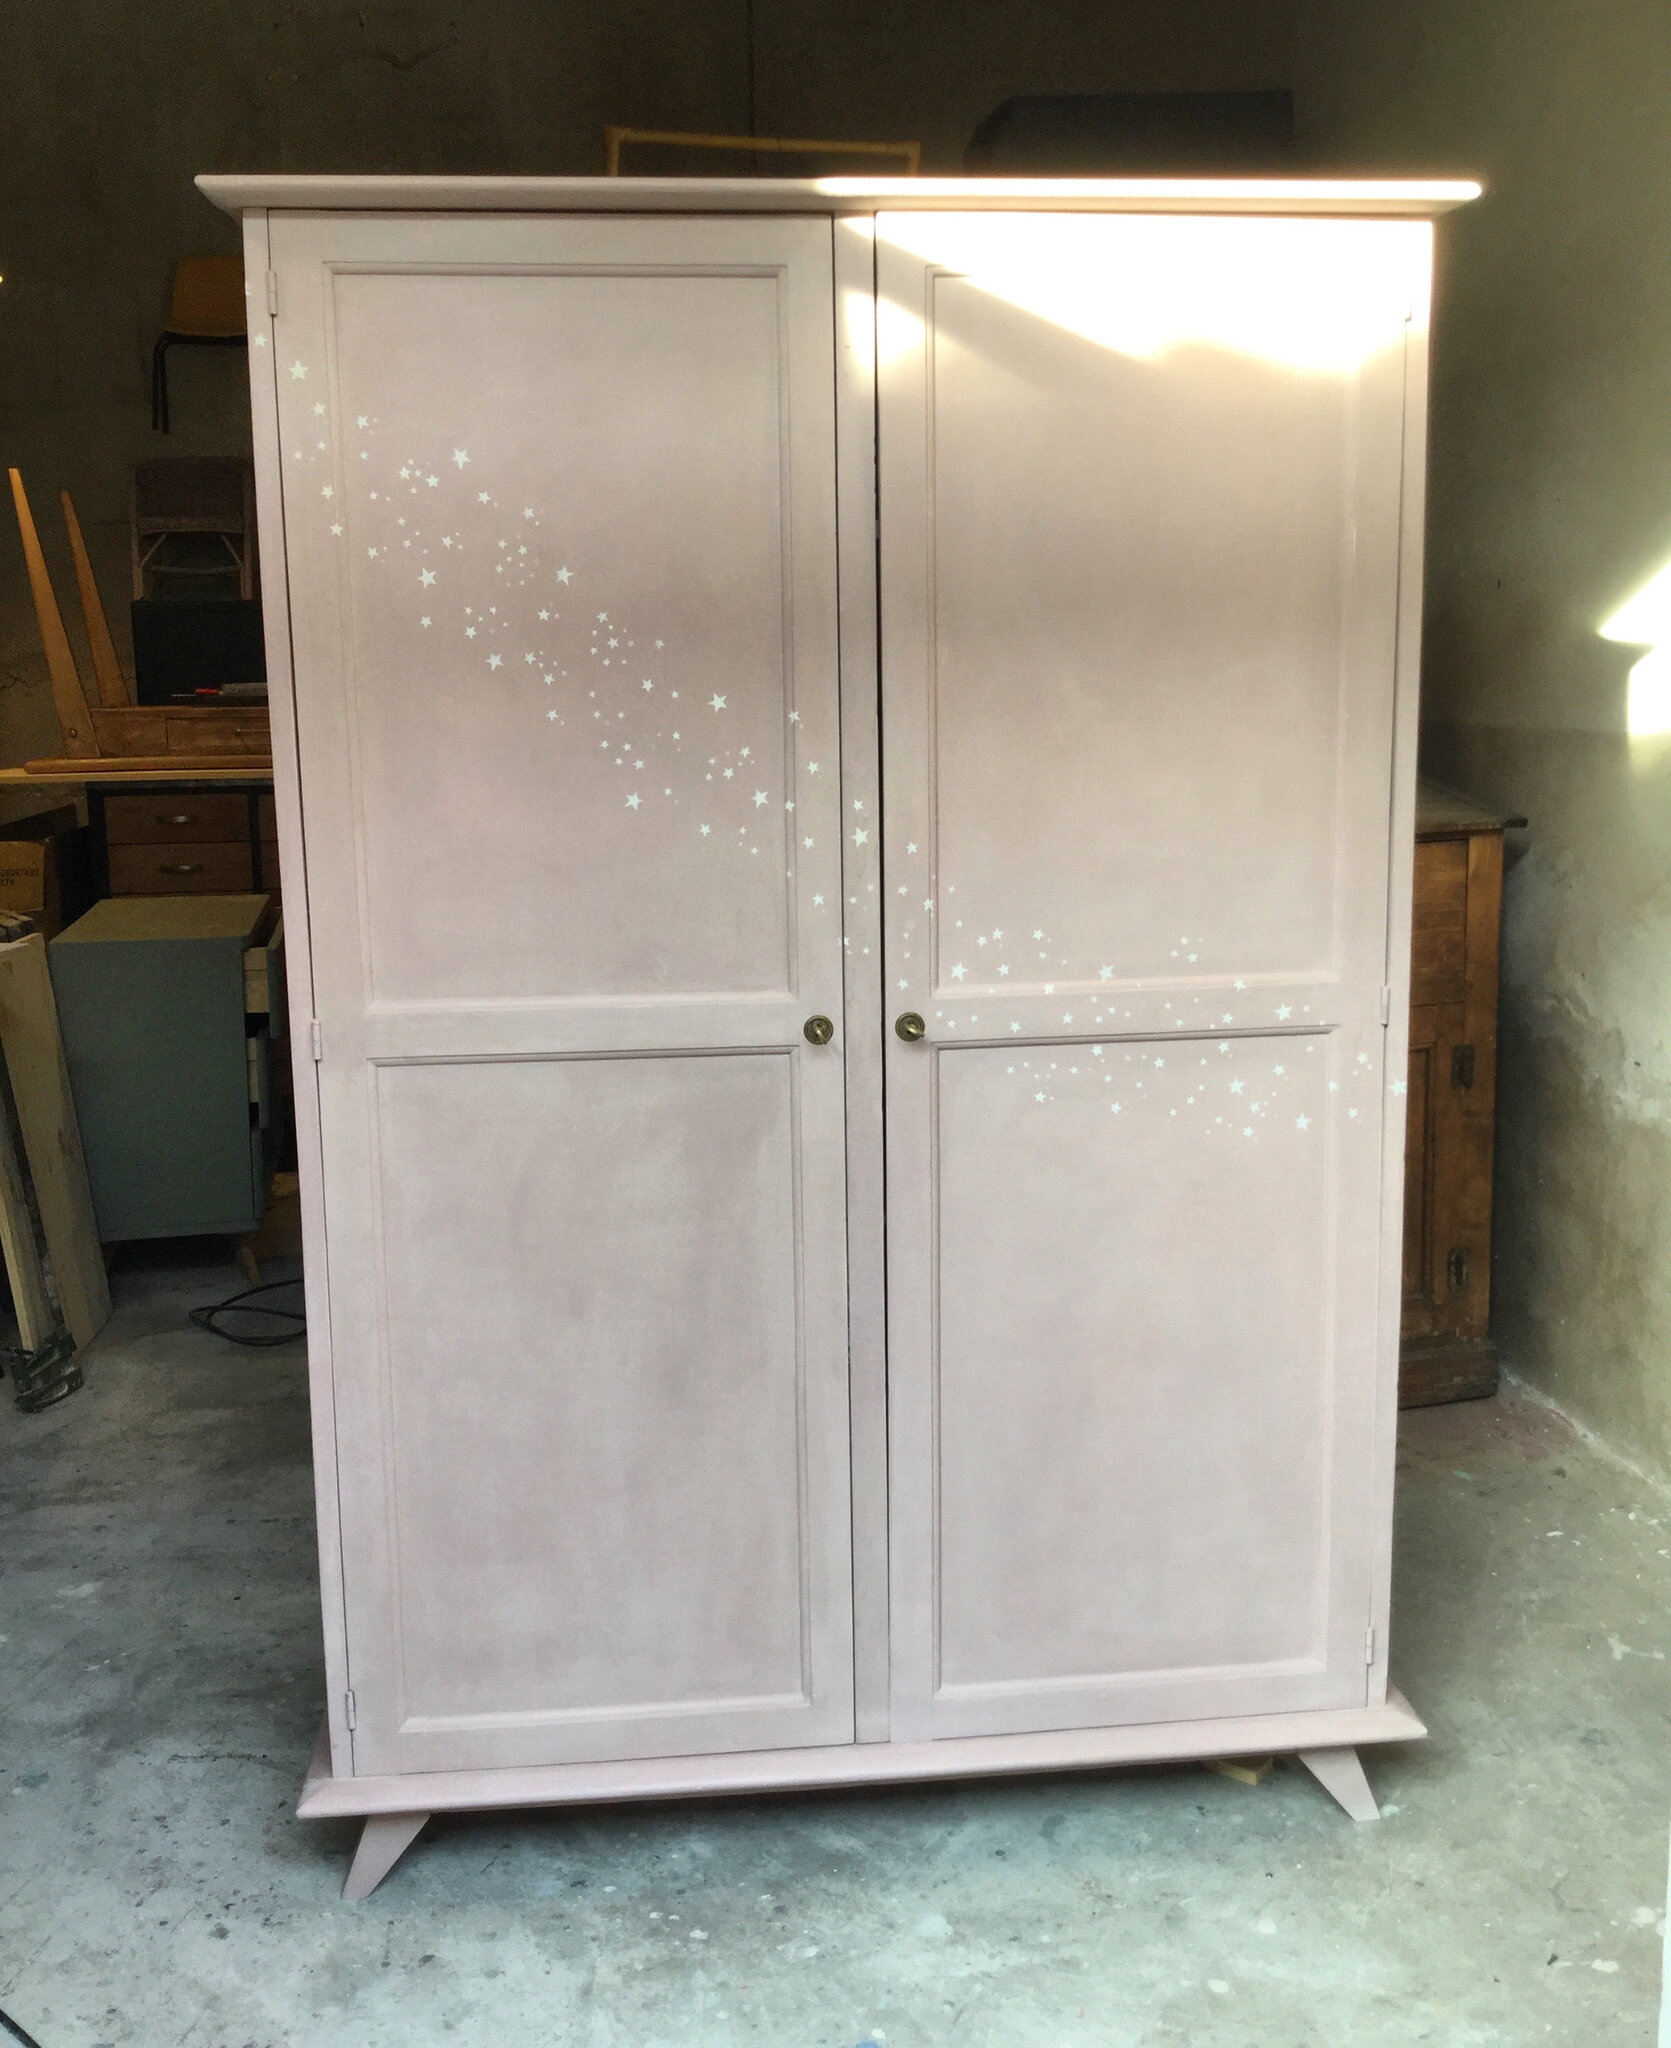 armoire vintage chambre cheap armoire parisienne noire duoccasion vintage design scandinave. Black Bedroom Furniture Sets. Home Design Ideas